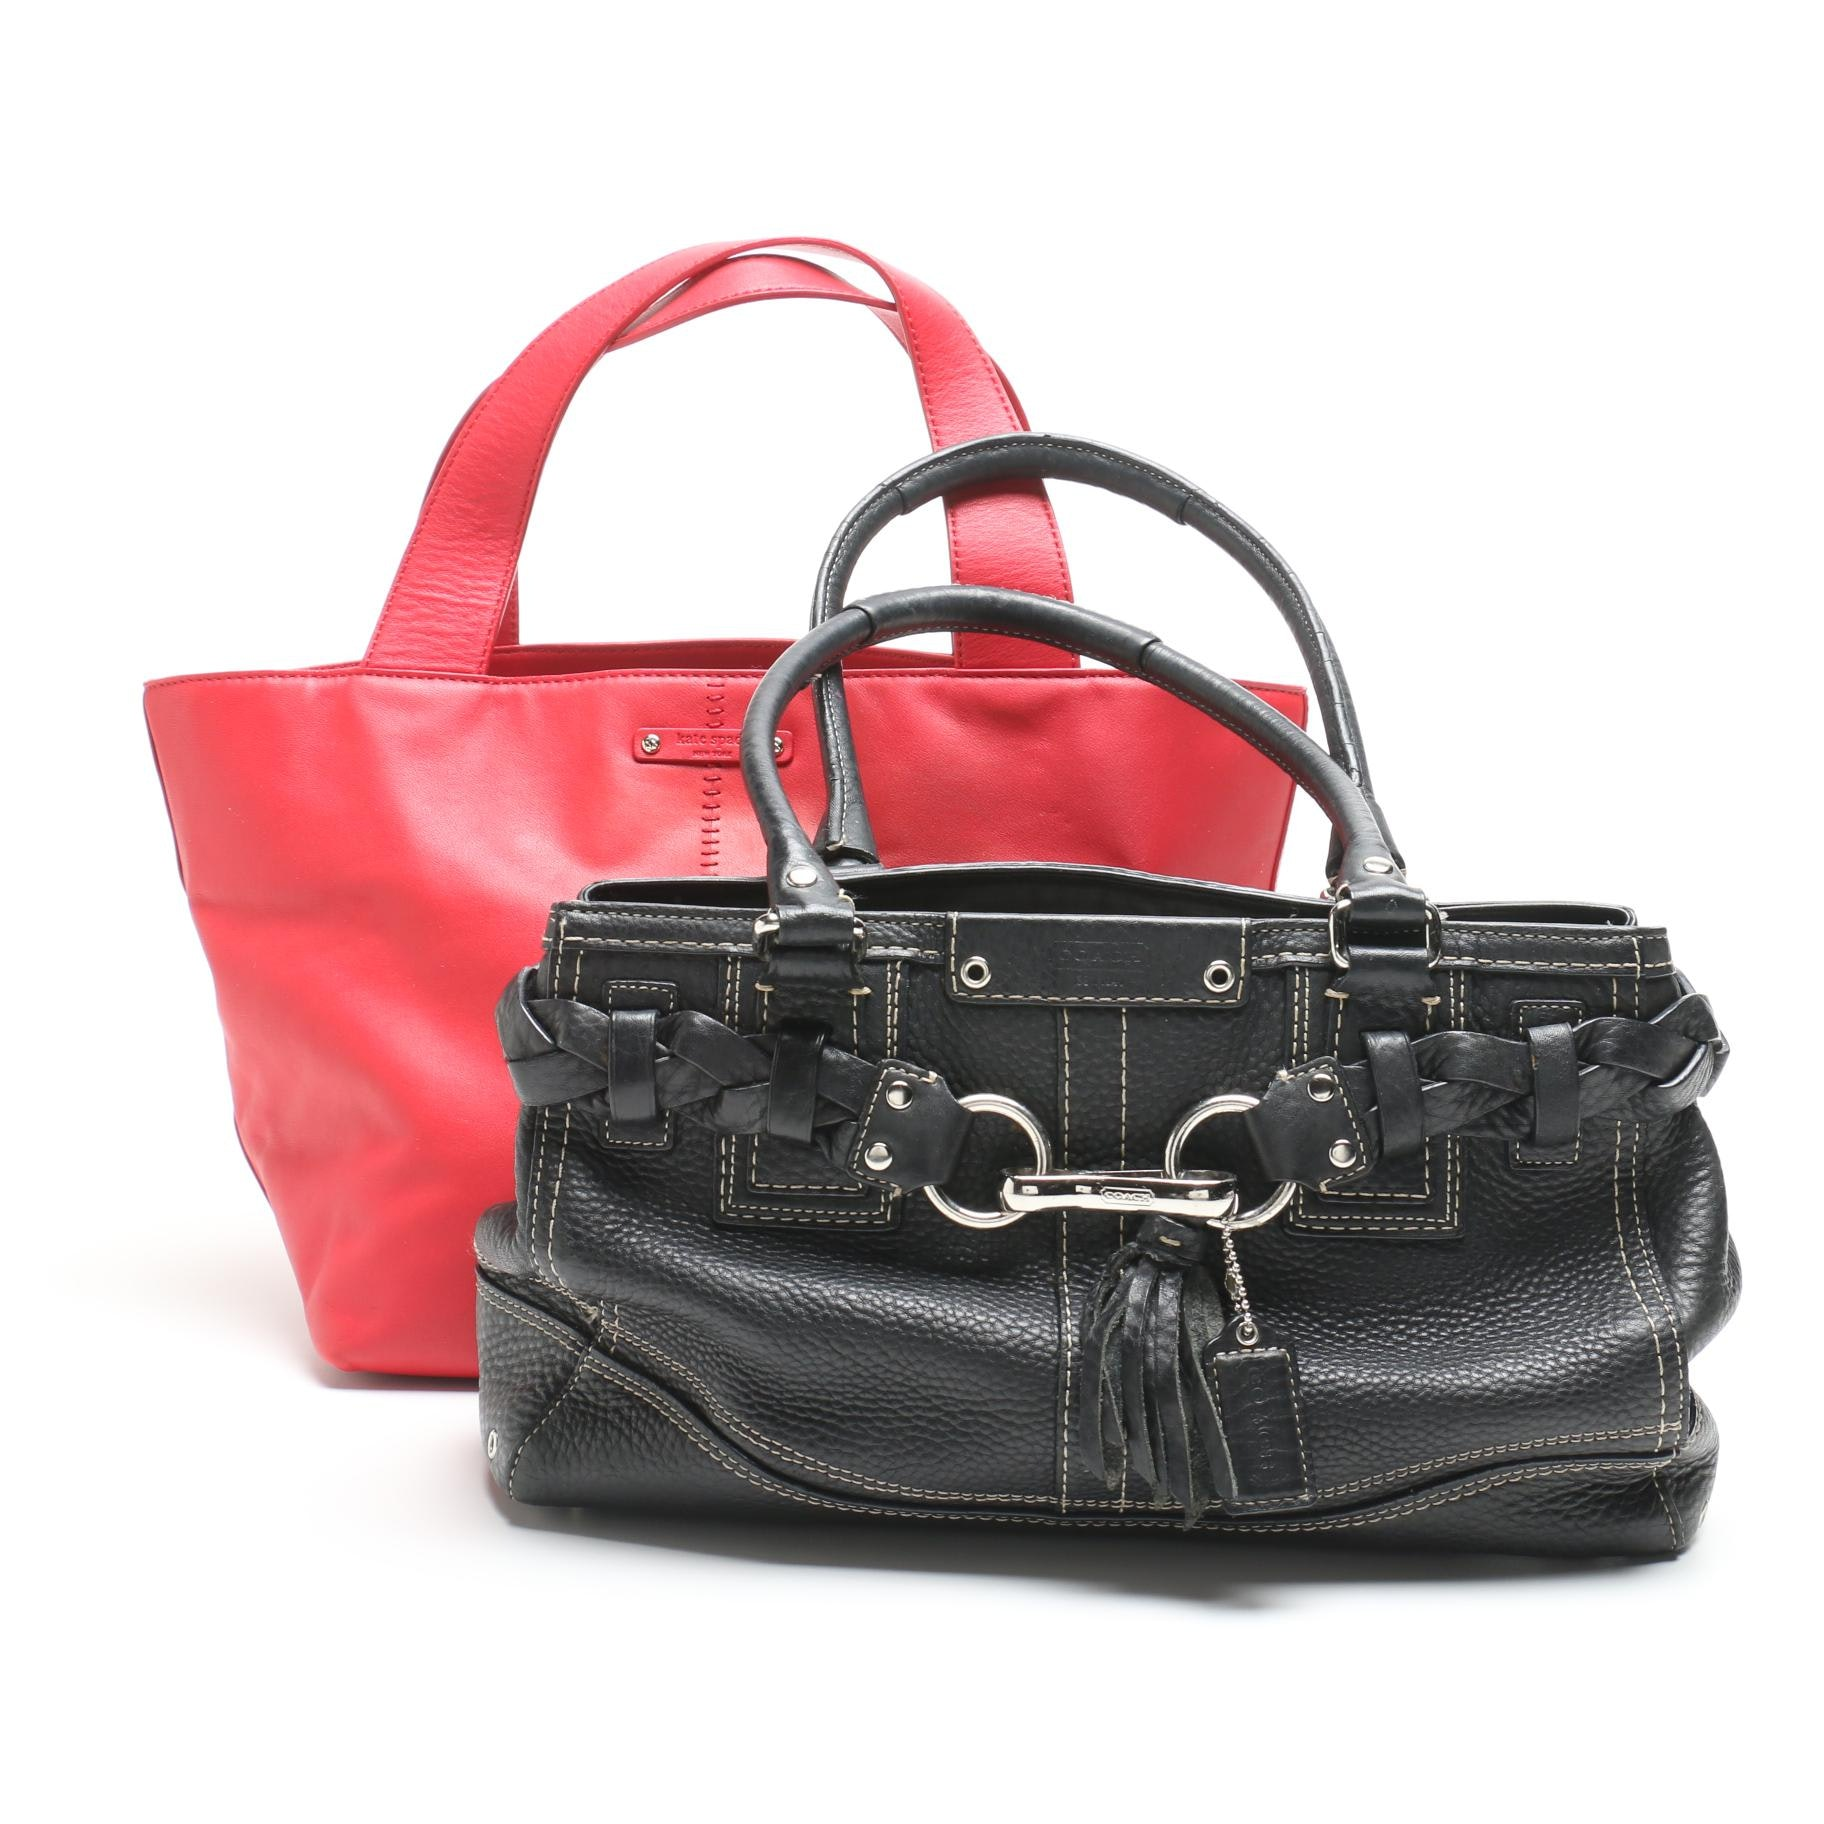 Kate Spade New York Red Leather Tote and Coach Pebbled Leather Hampton Carryall